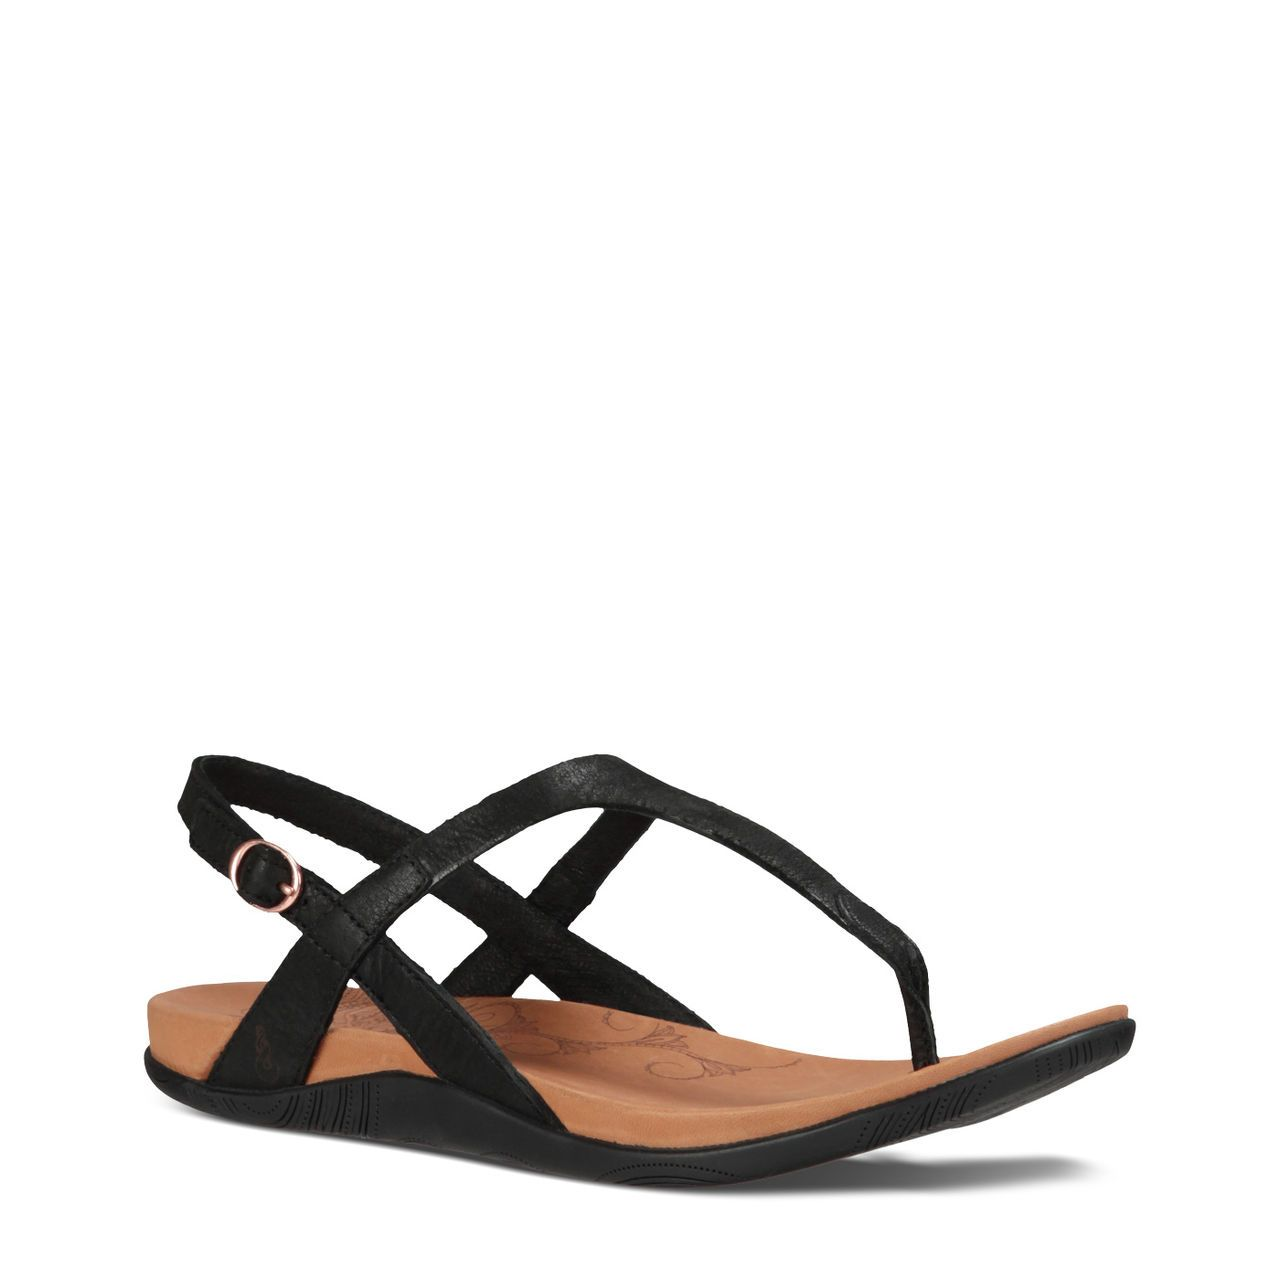 0e5235889e2 Shop Ahnu® Women s Salena Sandals with Free Shipping + Free Returns on  Casual…